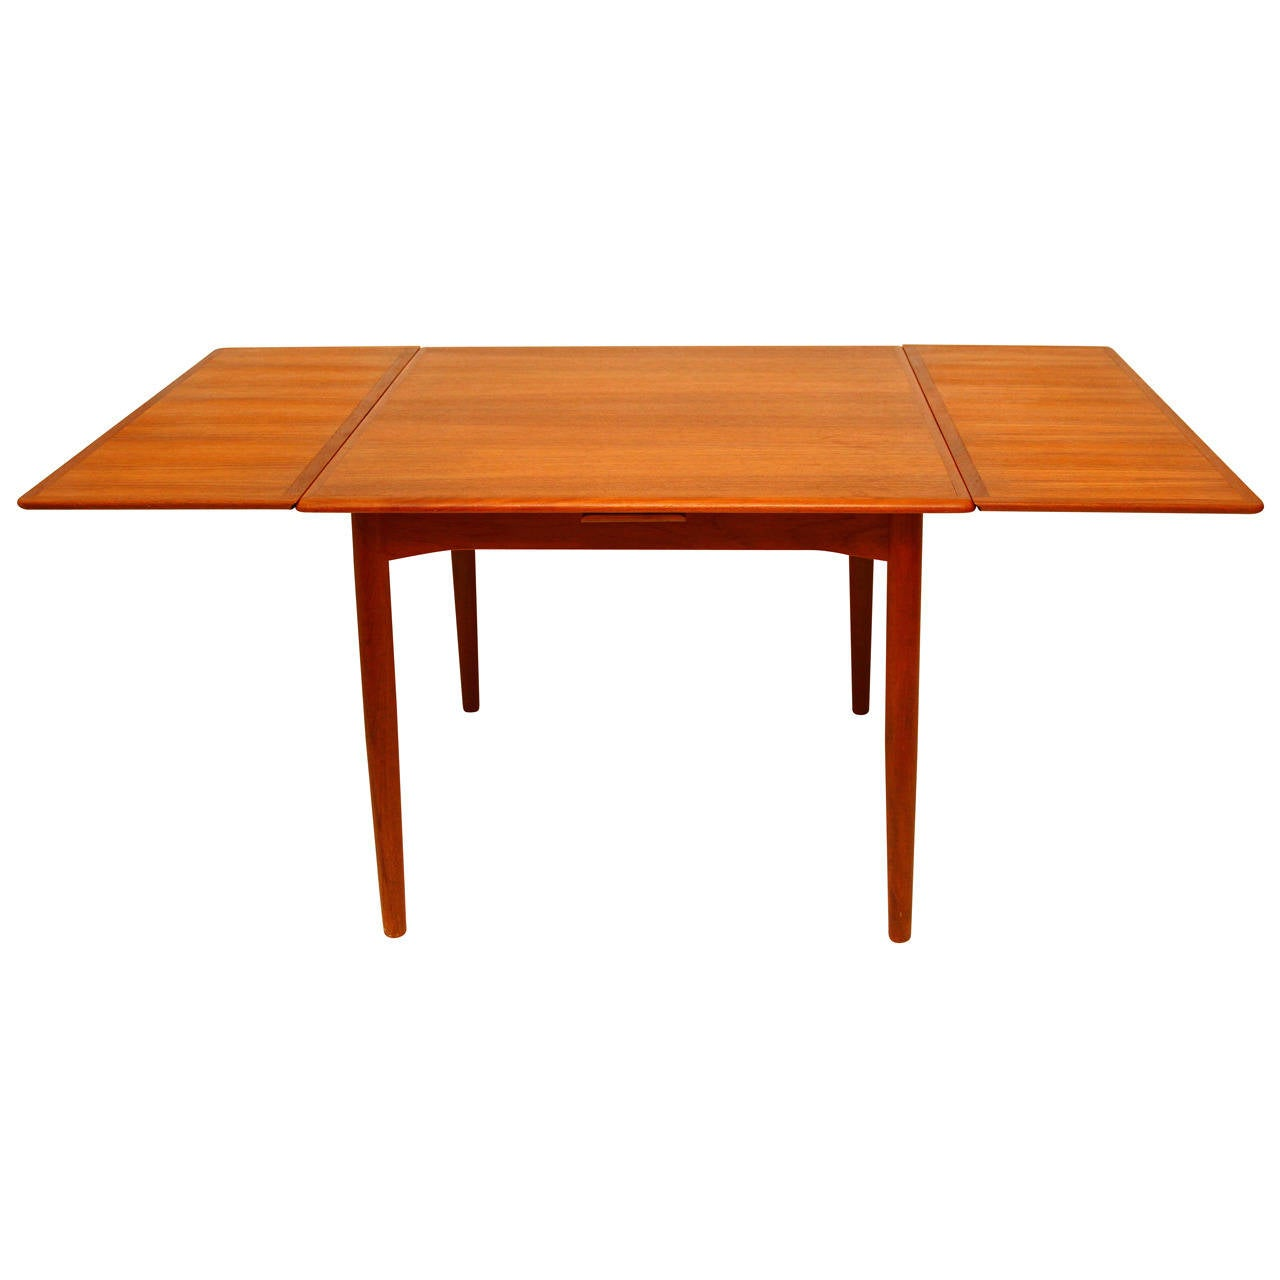 Extension dining table teak danish modern at 1stdibs for Danish modern dining room table